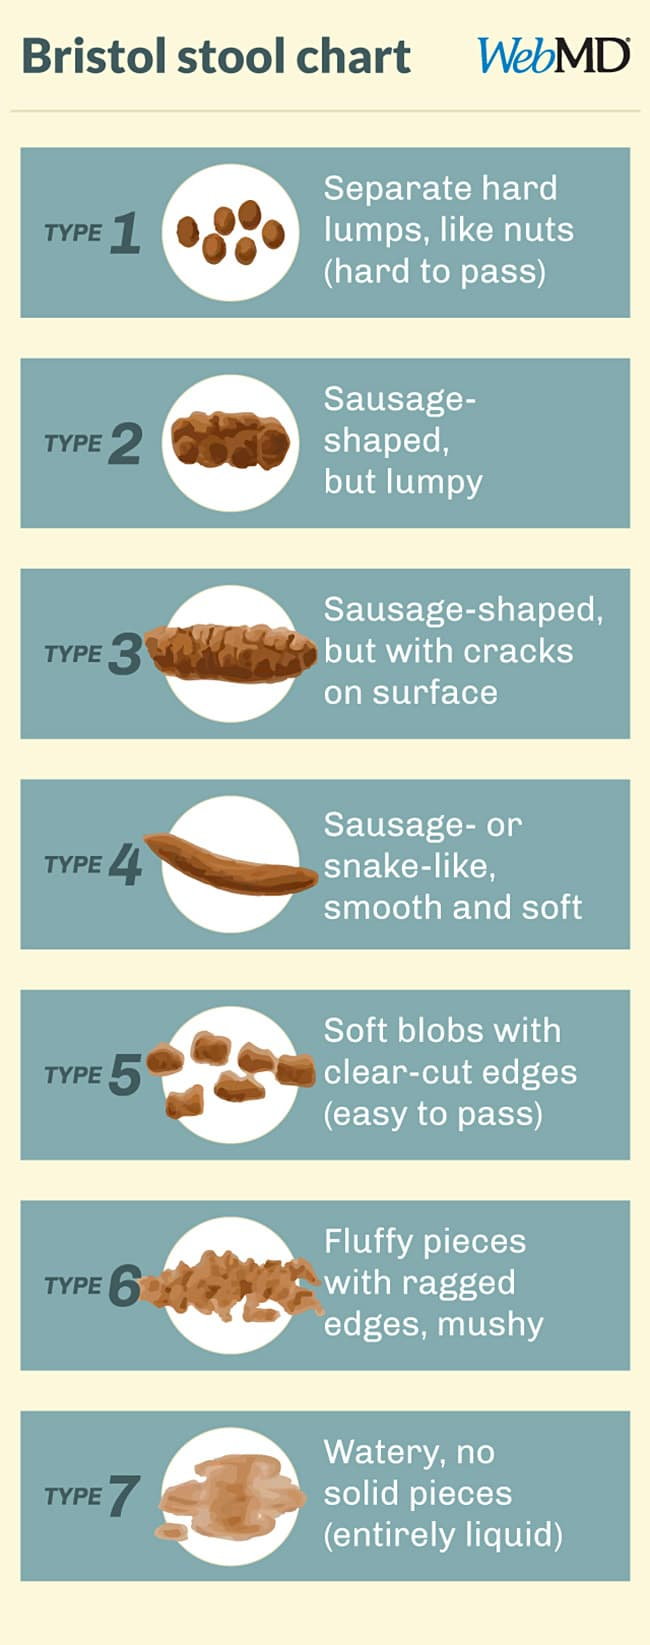 Bristol stool chart types of poop shapes textures consistency